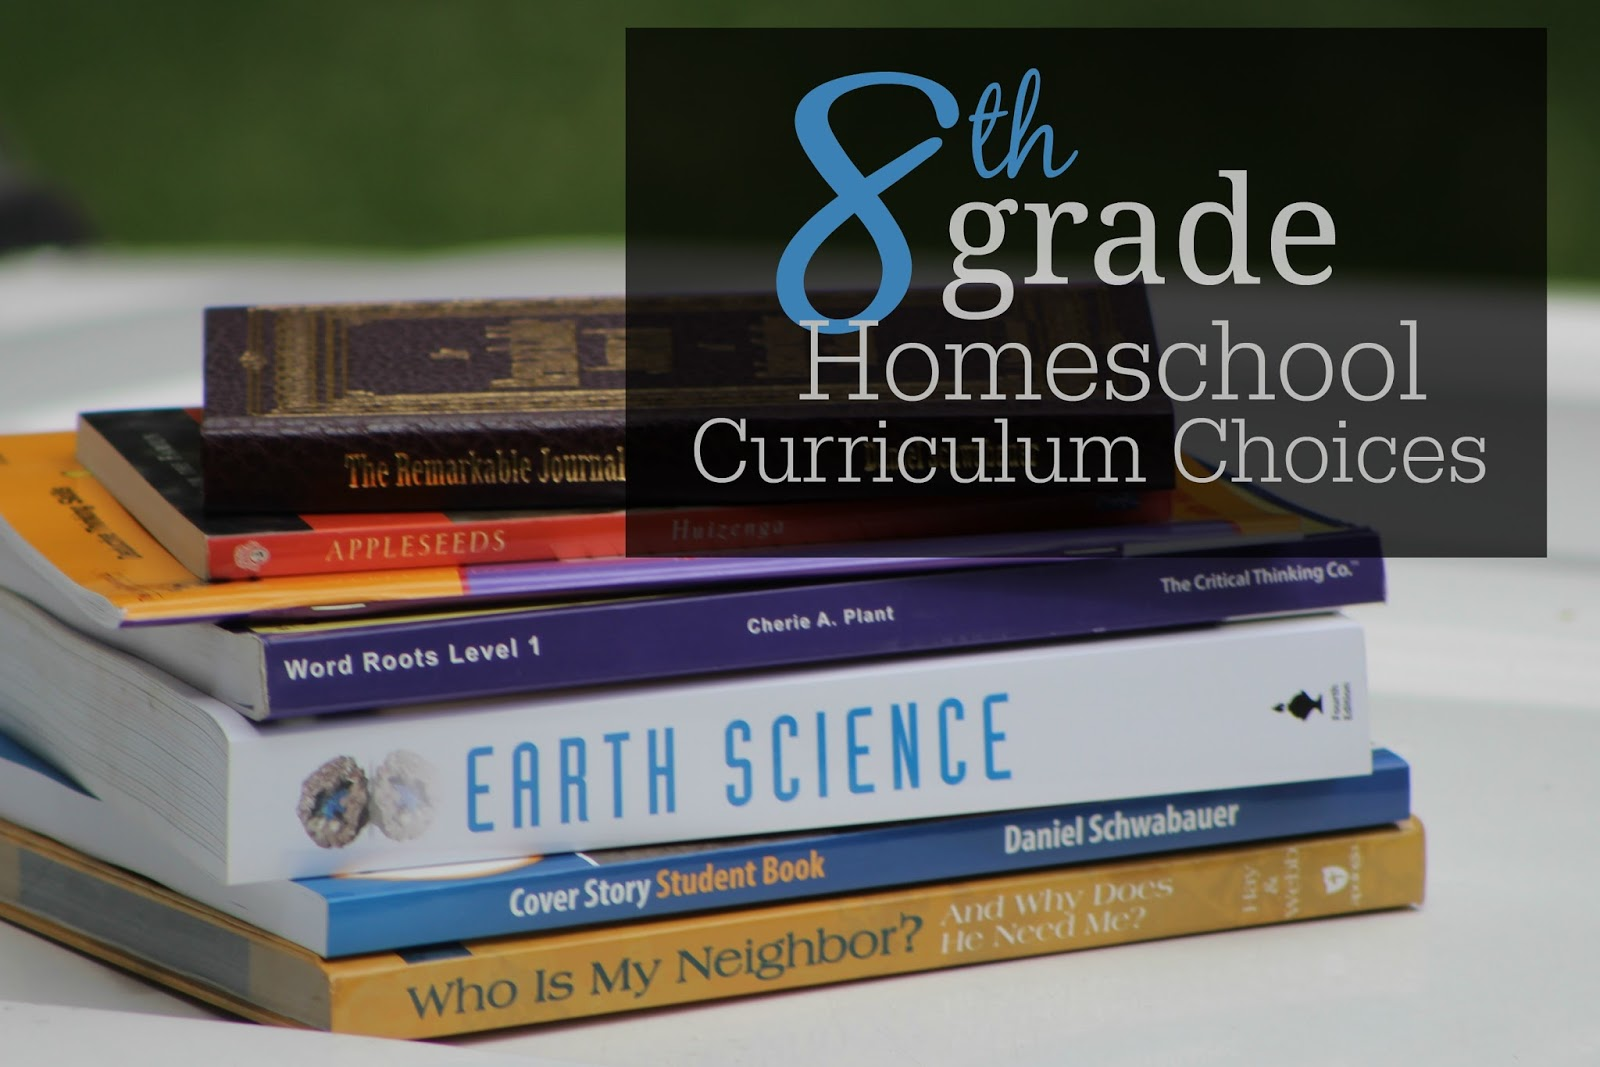 The Unlikely Homeschool 8th Grade Homeschool Curriculum